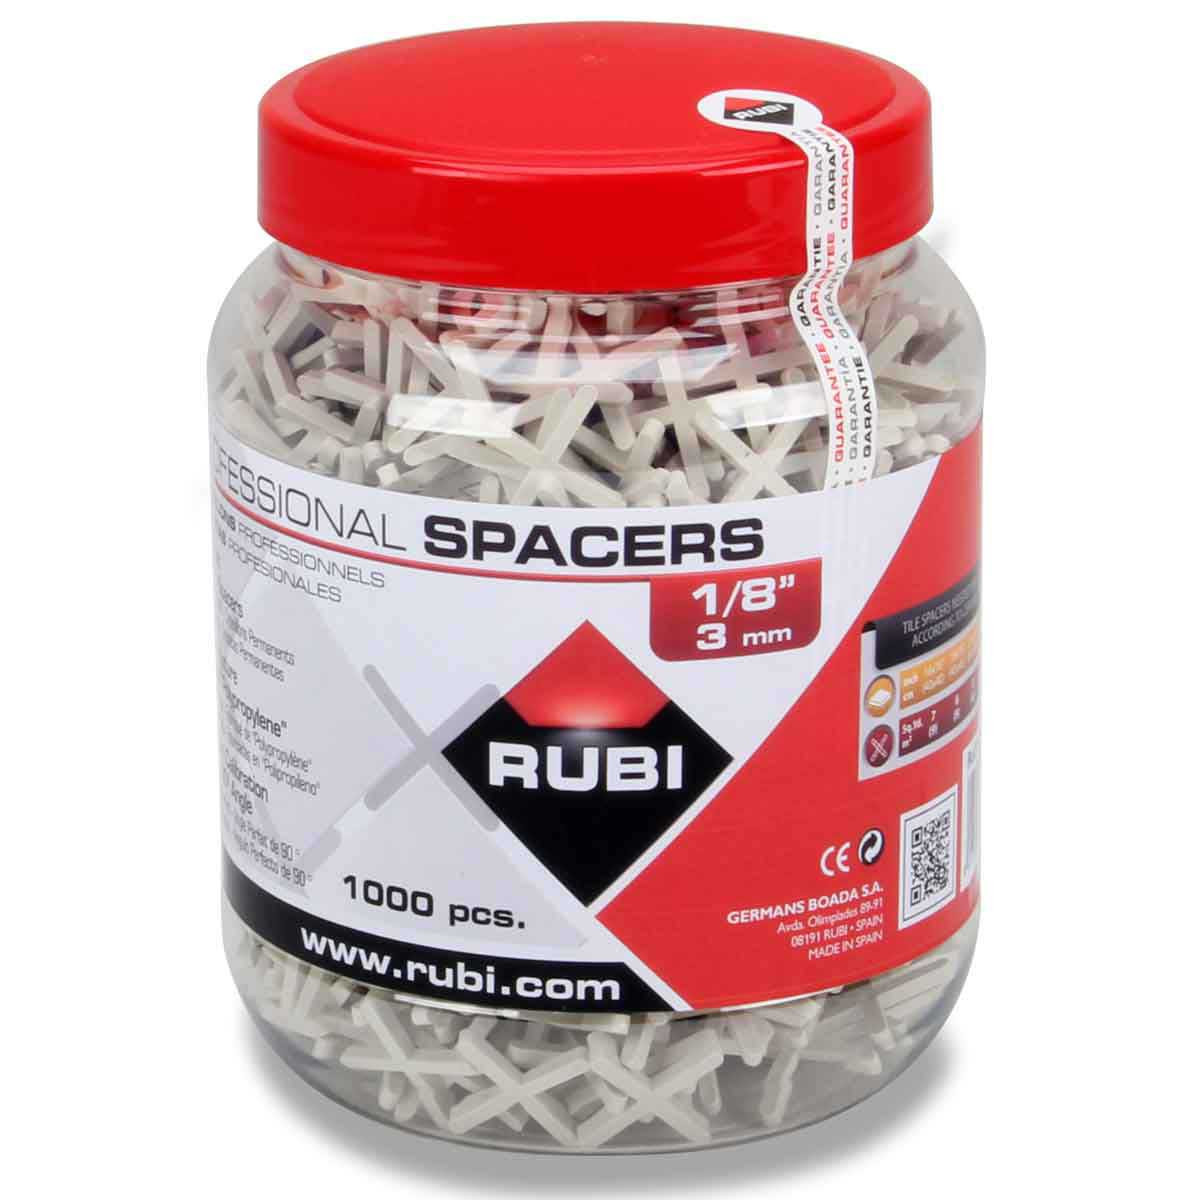 1/8th inch Rubi Leave-in Spacers Jars 02281